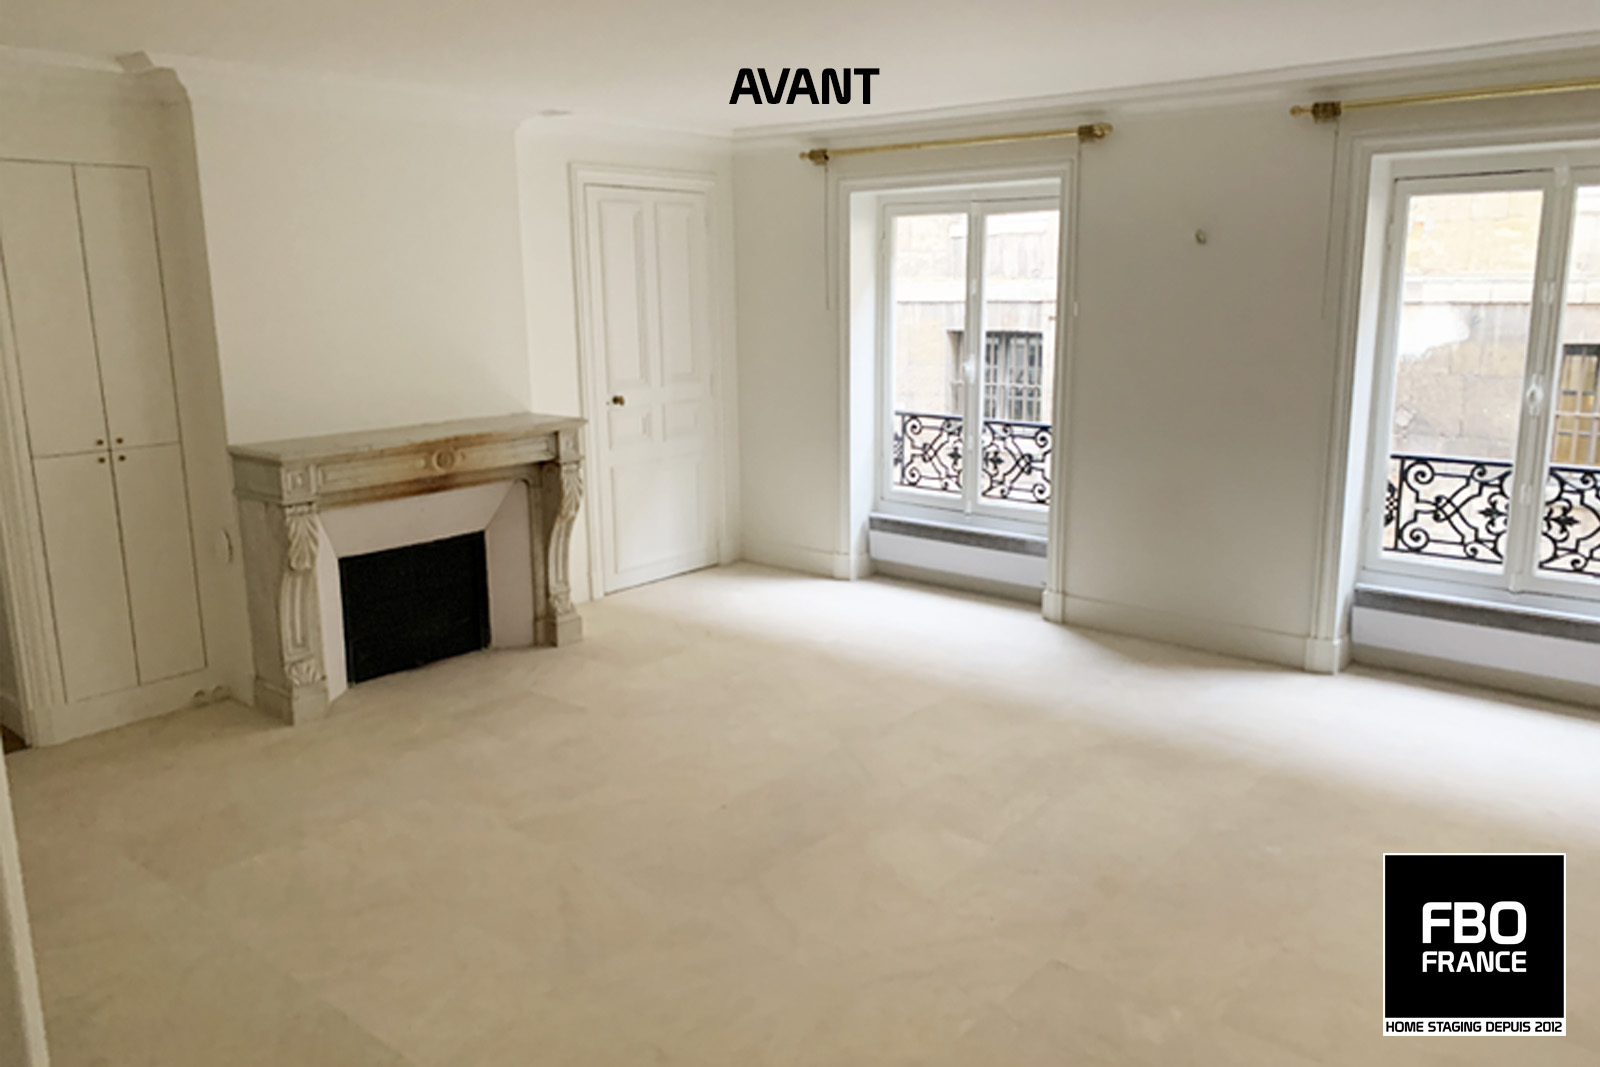 avant-home-staging-paris